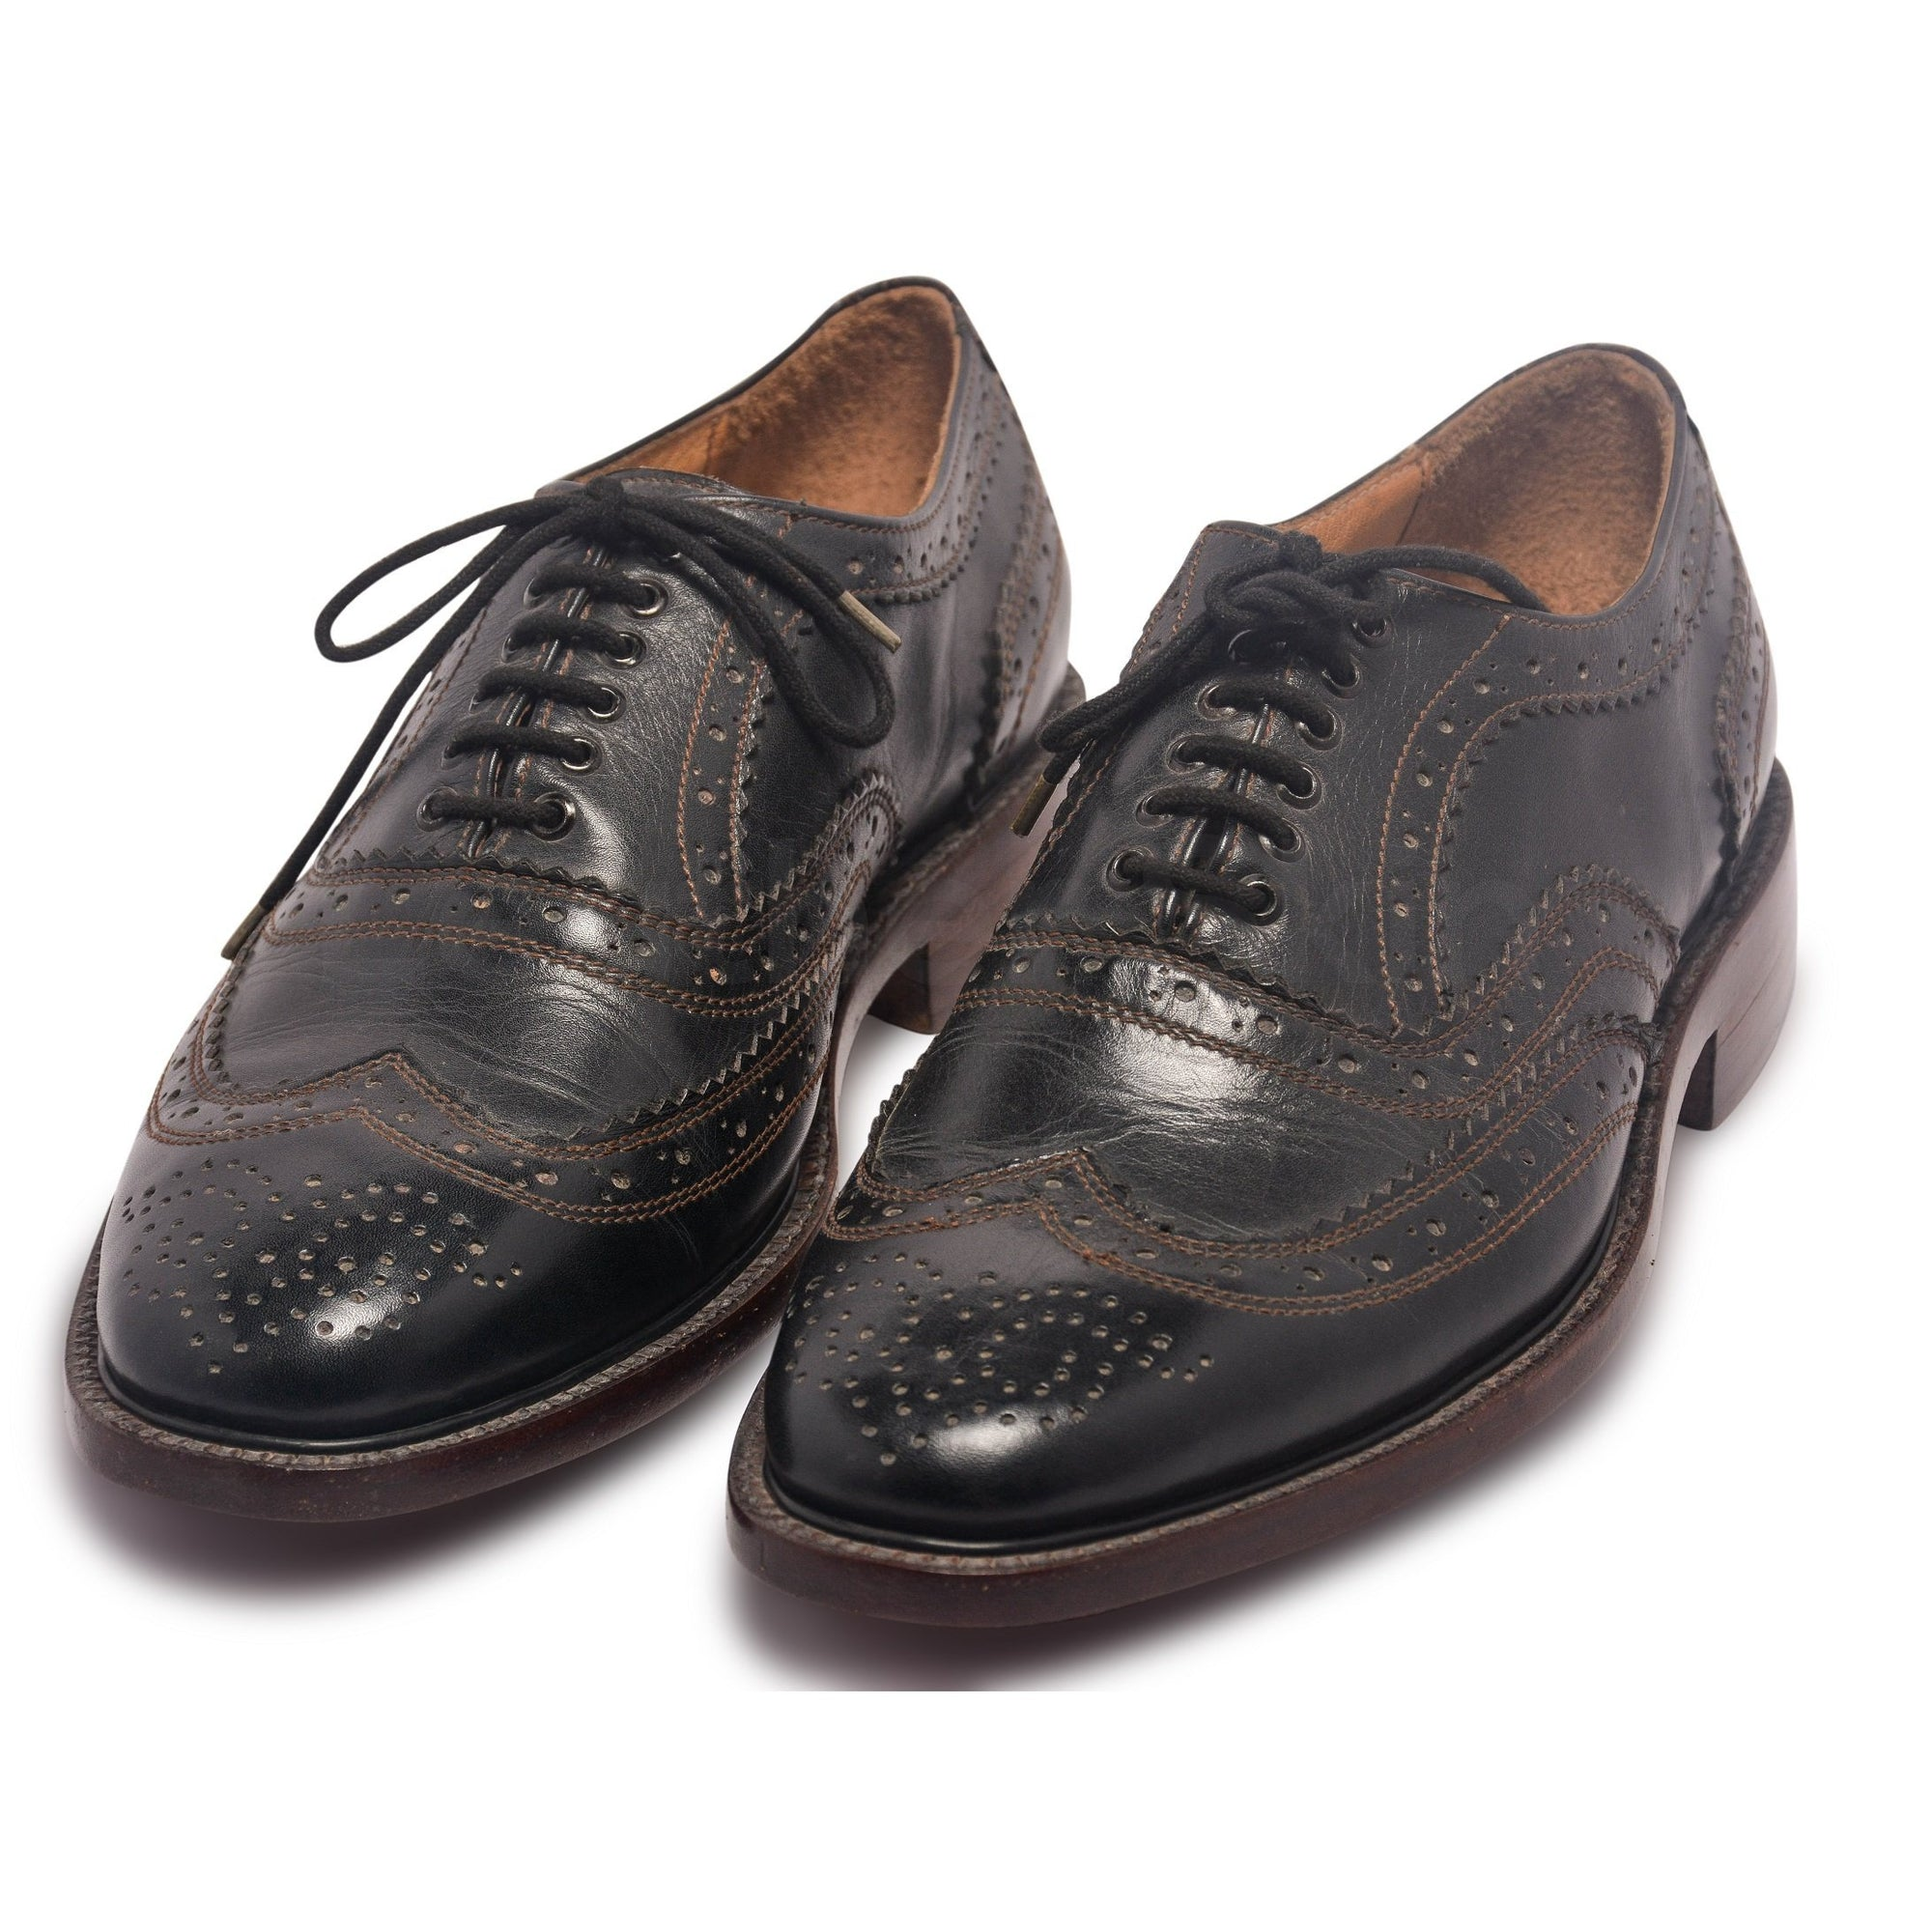 Mens Black Oxford Wingtip Brogue Shoes with Brown stitching